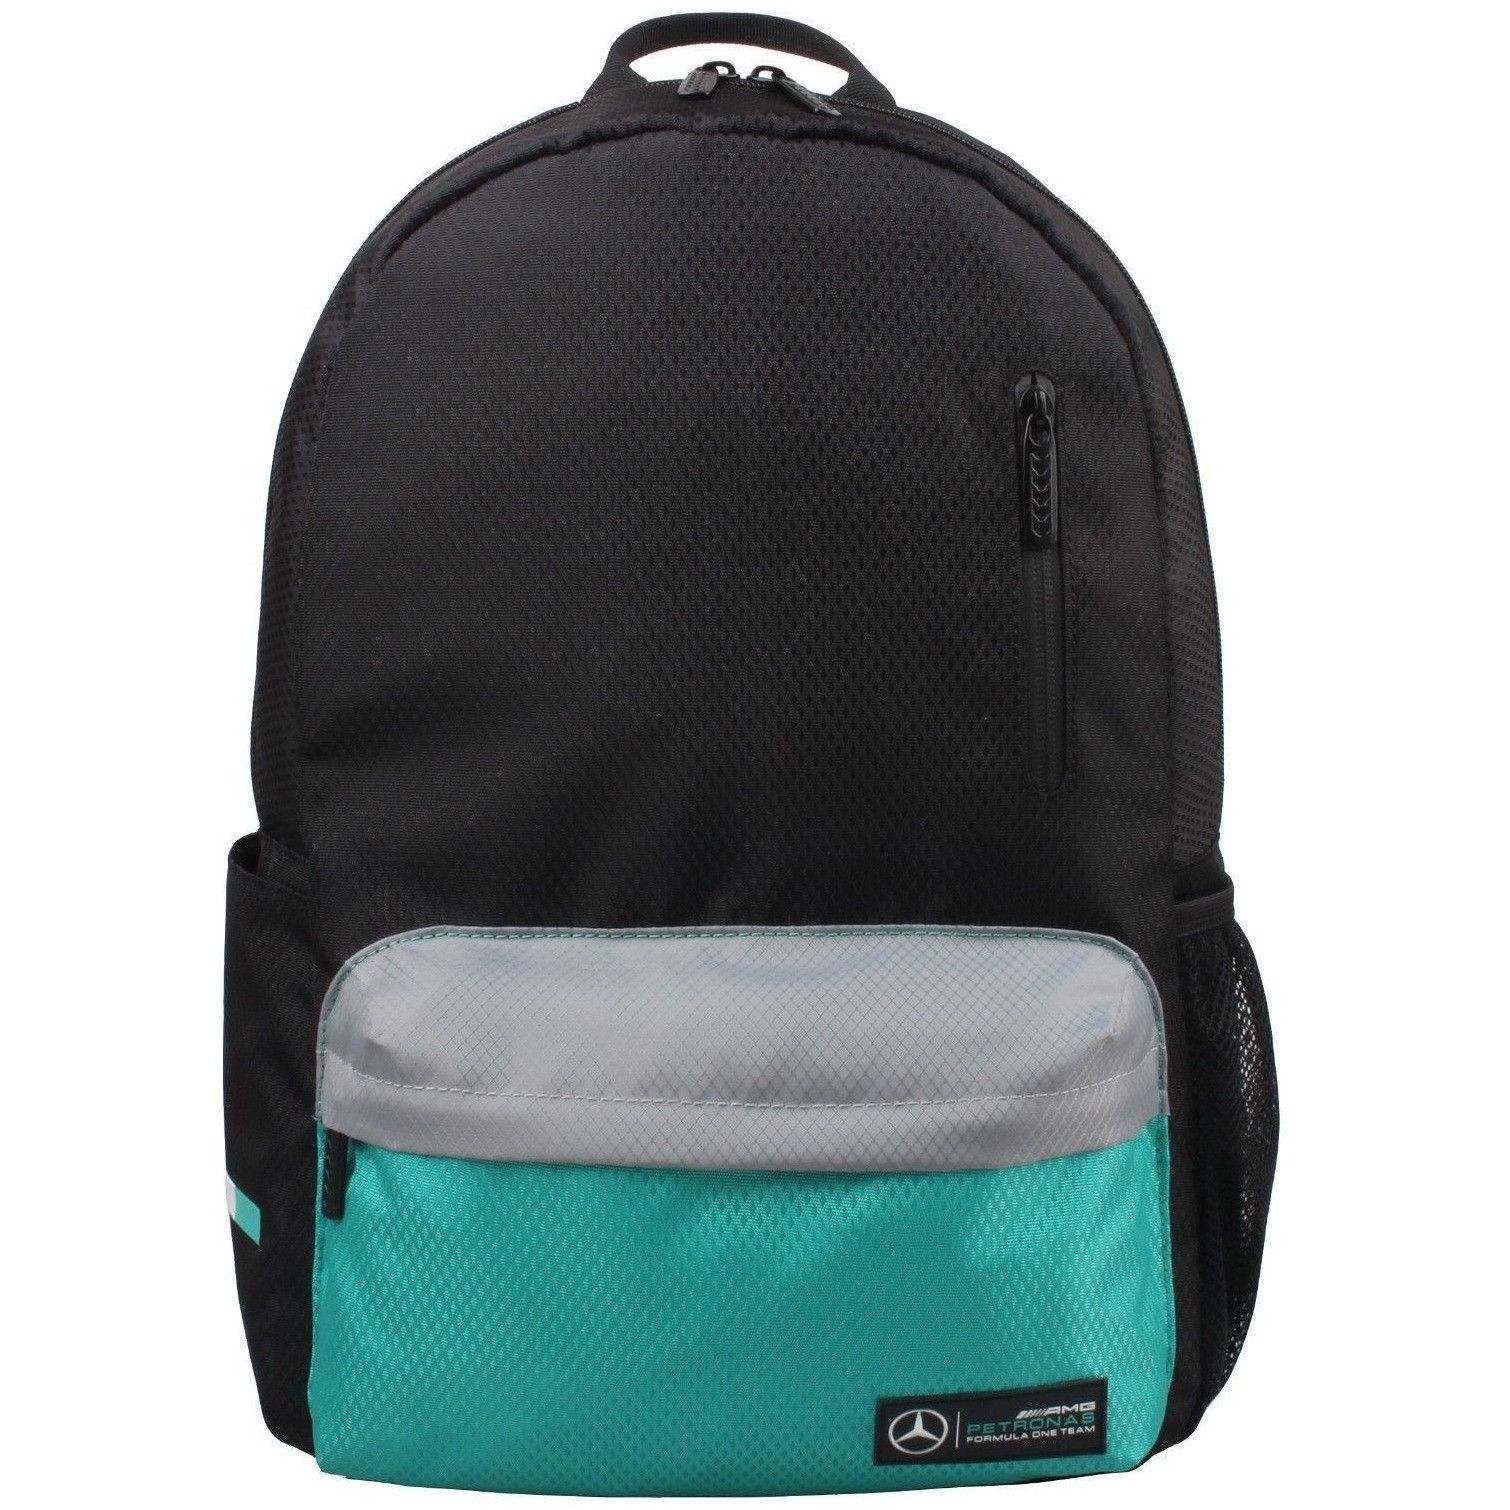 Mercedes Benz AMG Petronas Mid-Size Backpack Formula 1 Merchandise d112bc52b7c6a